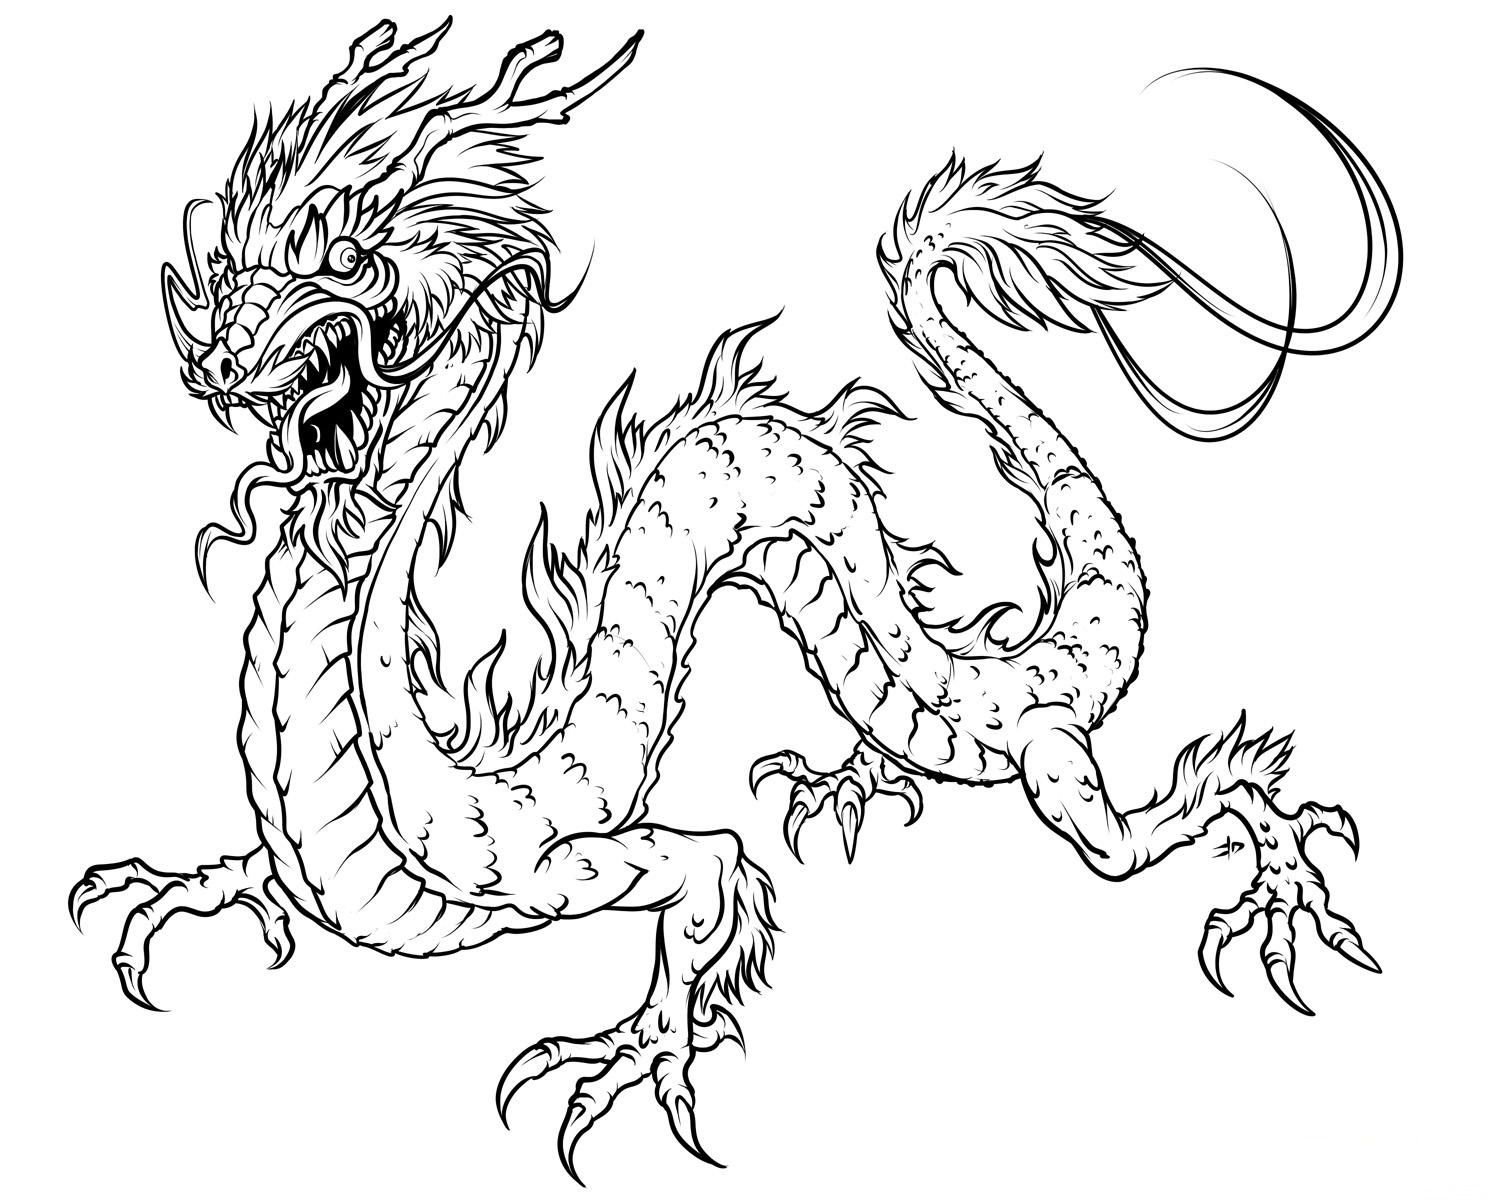 Free Printable Dragon Coloring Pages For Kids | Art | Dragon - Free Printable Dragon Stencils